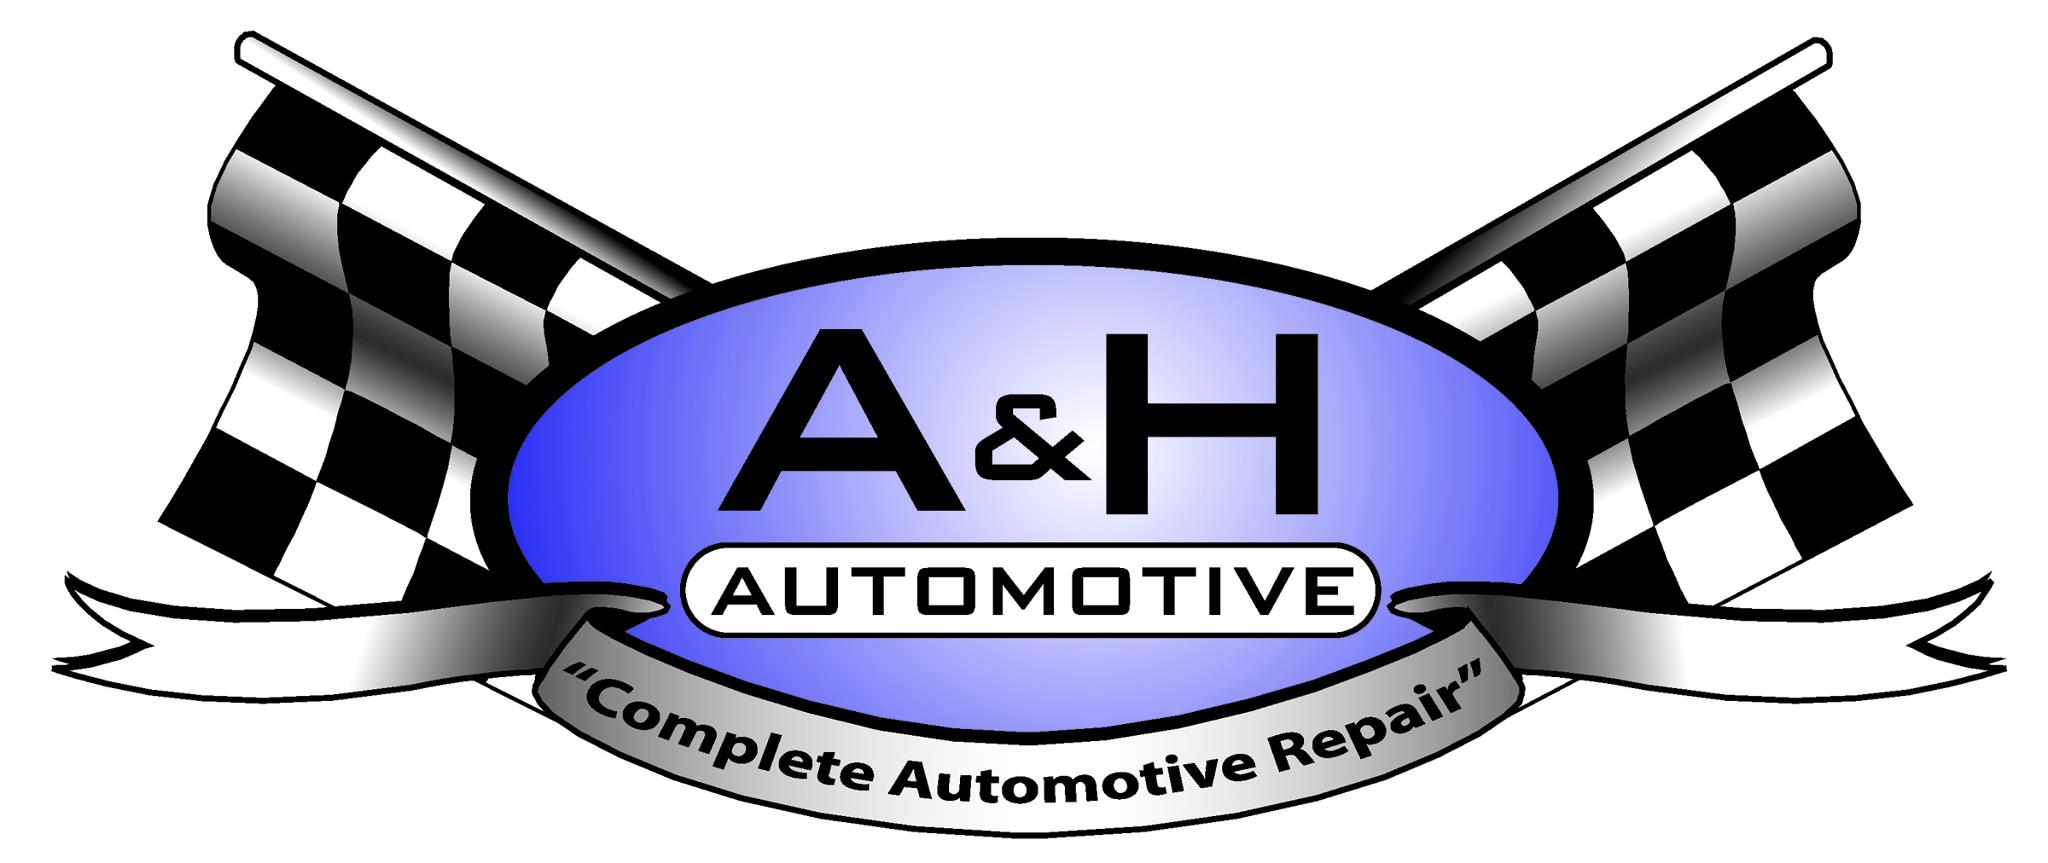 A h heating air conditioning service - Logo Brands Ac Delco Alldata Be Car Care Aware Certified Transmissions Freightliner Identifix Interstate Batteries Jeep John Deere Mac